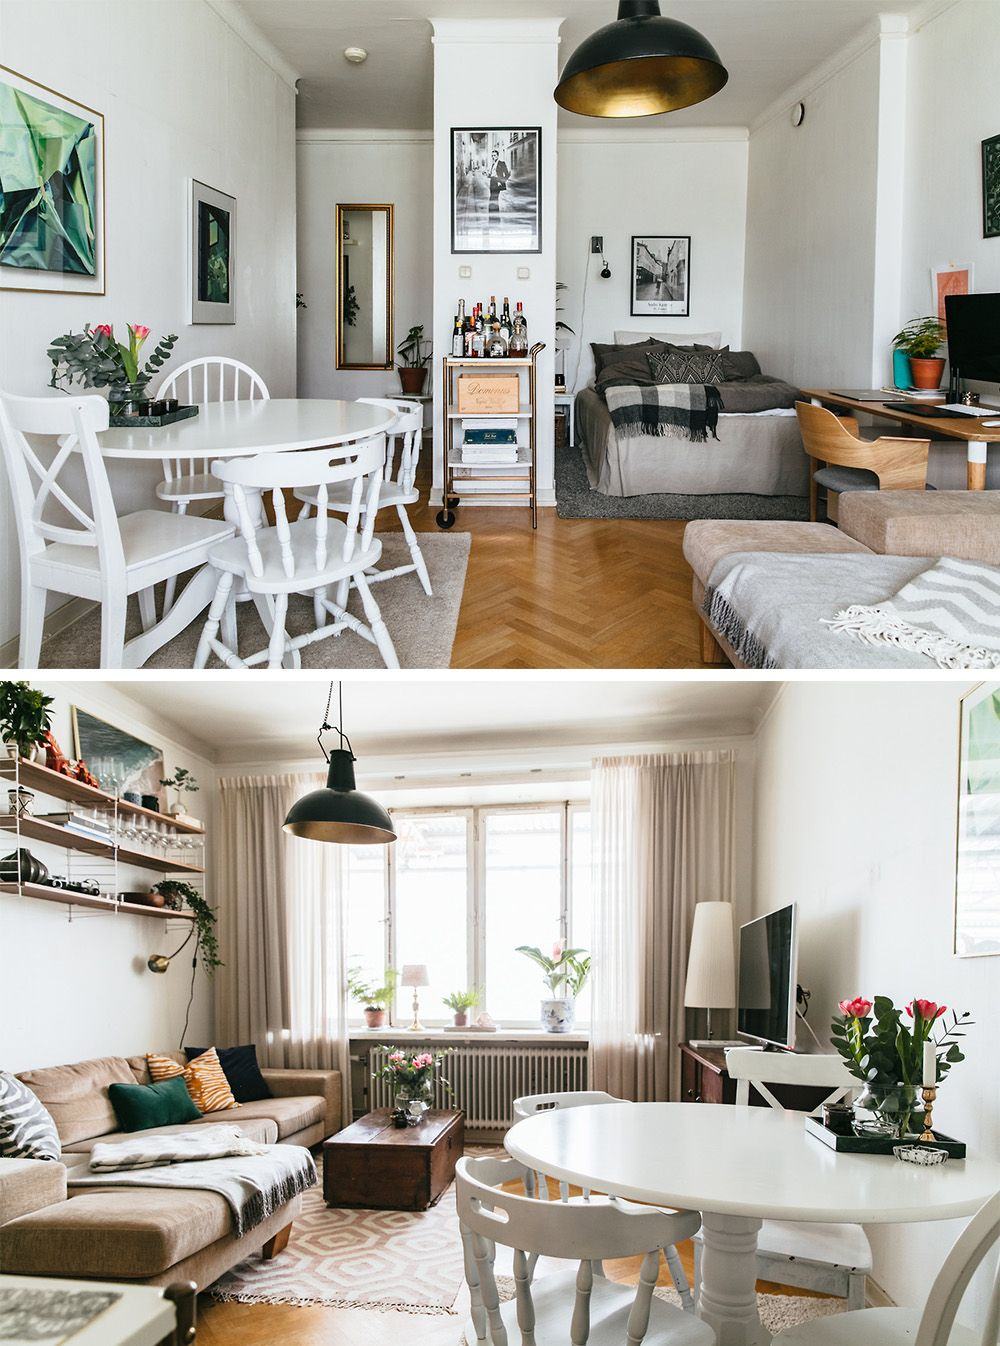 Bedroom Living Room And Dining Room In One Living Room And Bedroom In One Small Apartment Interior One Room Flat